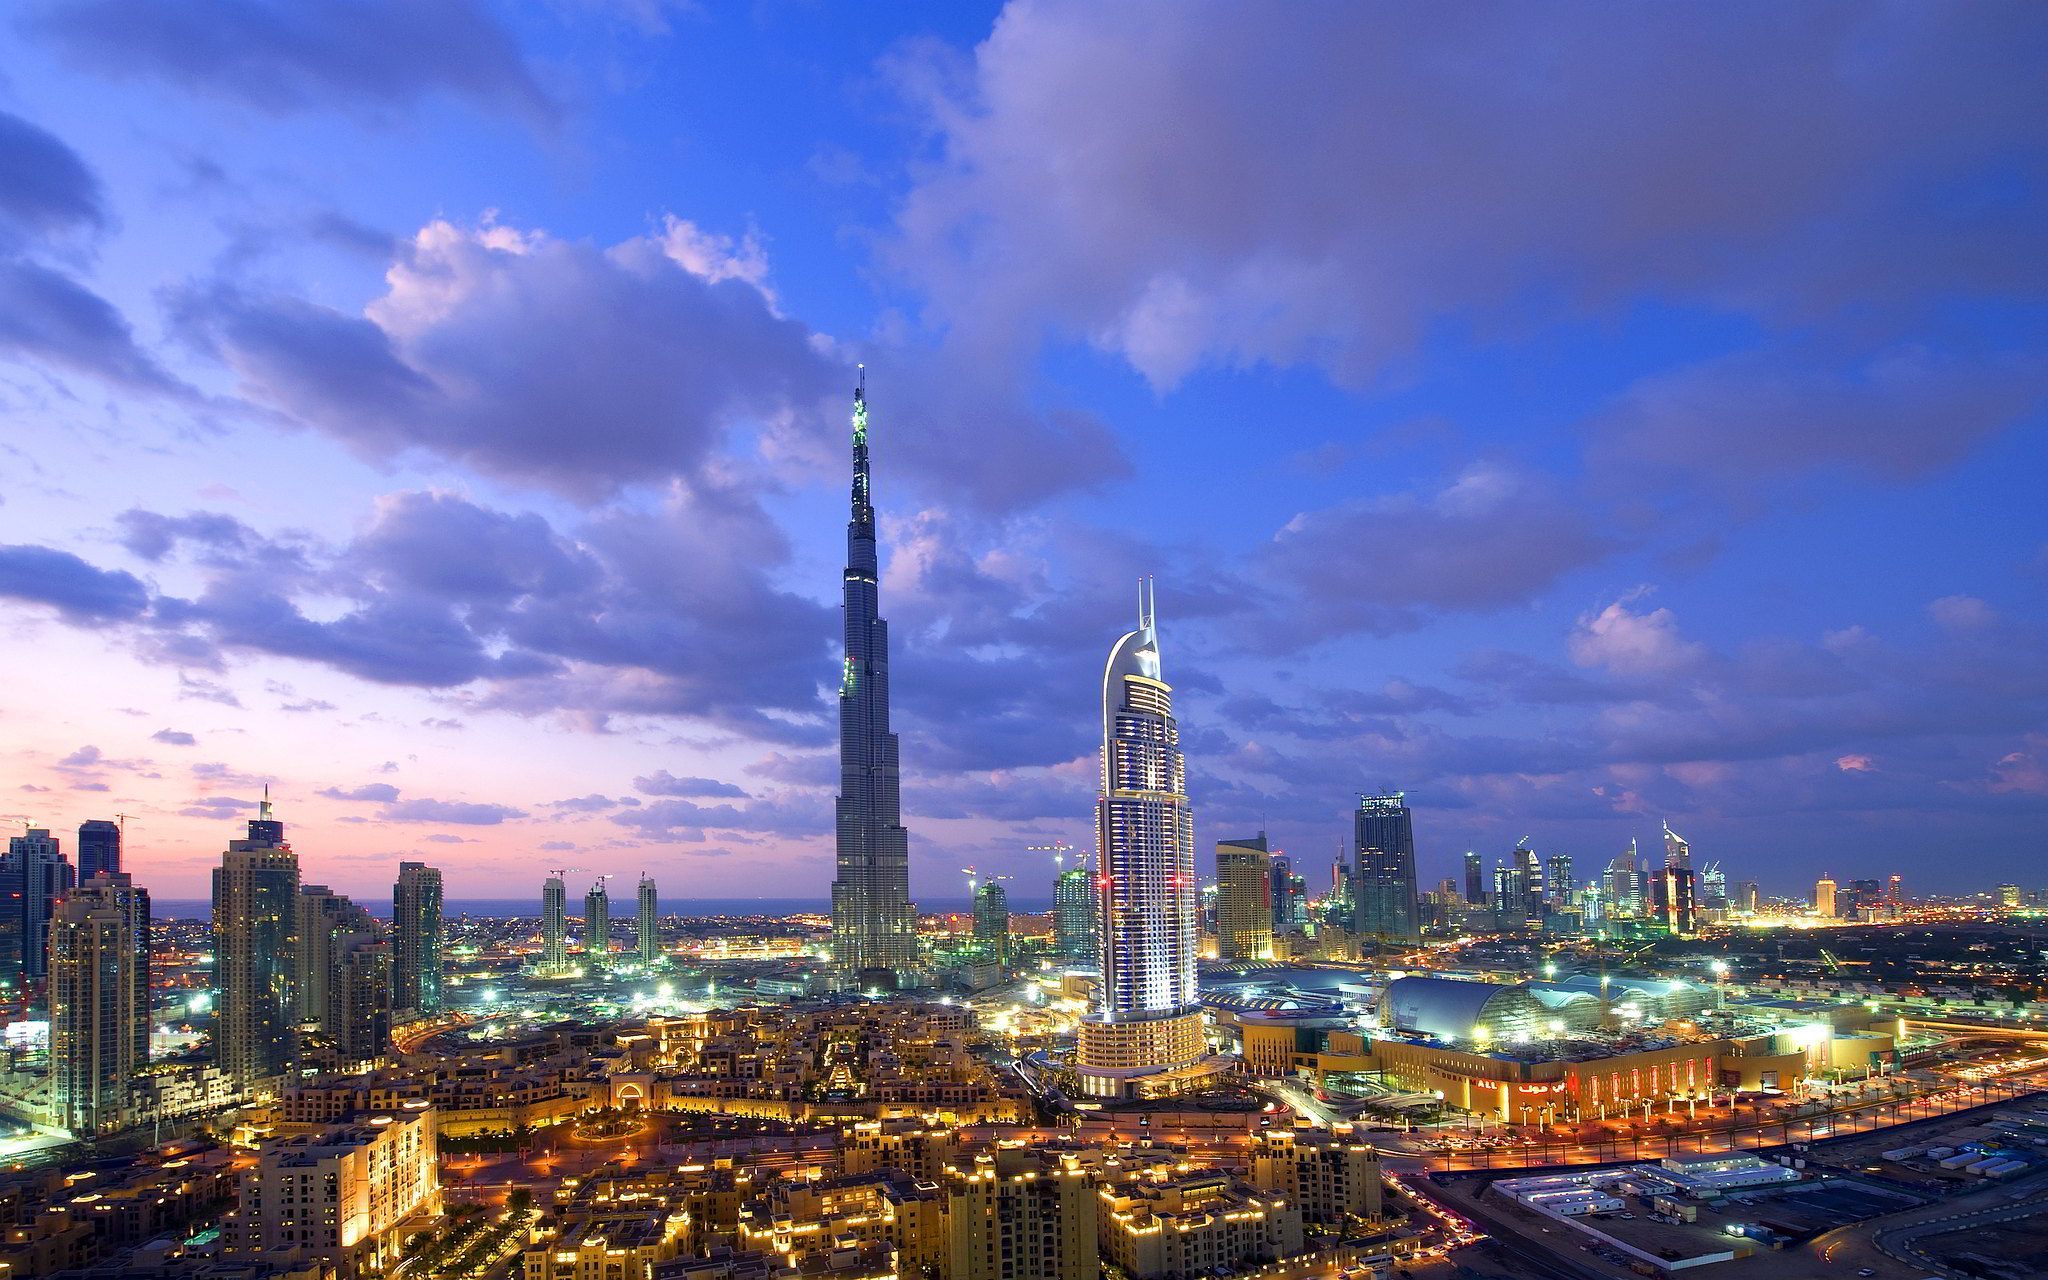 Burj-al-Khalifa-Dubai-hd-wallpaper-download-free-photo